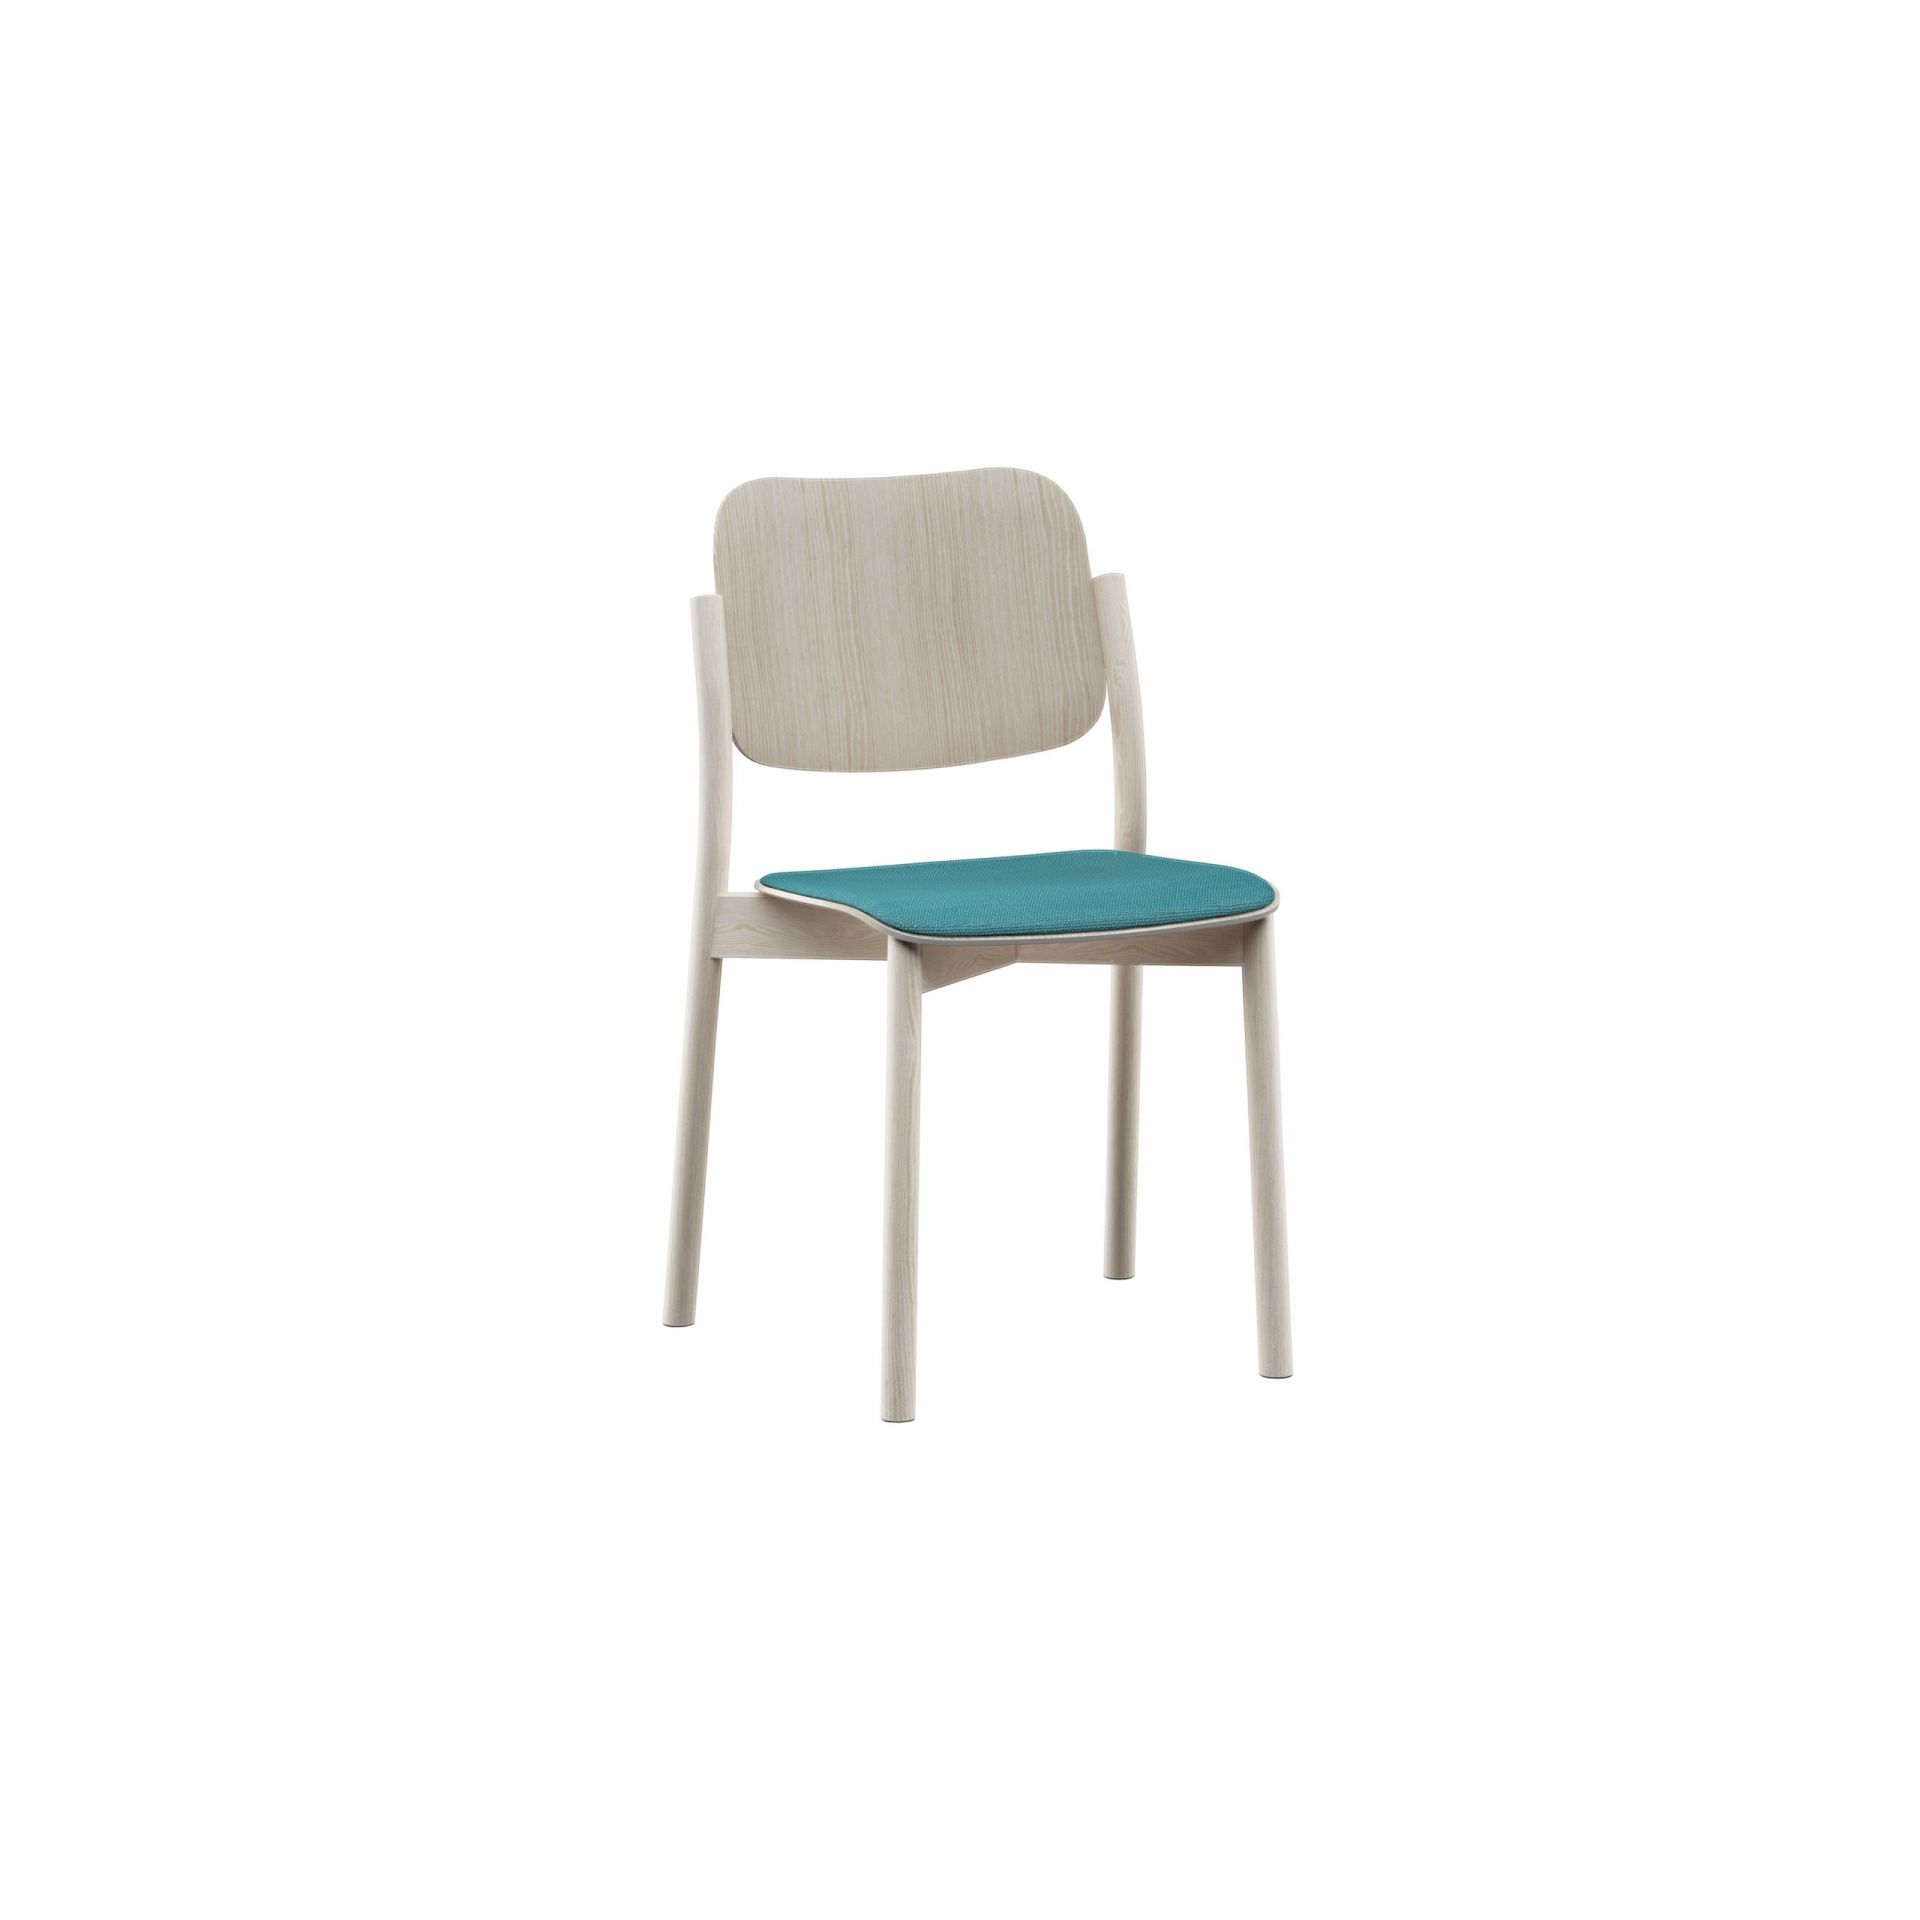 Zoe Wooden chair product image 1